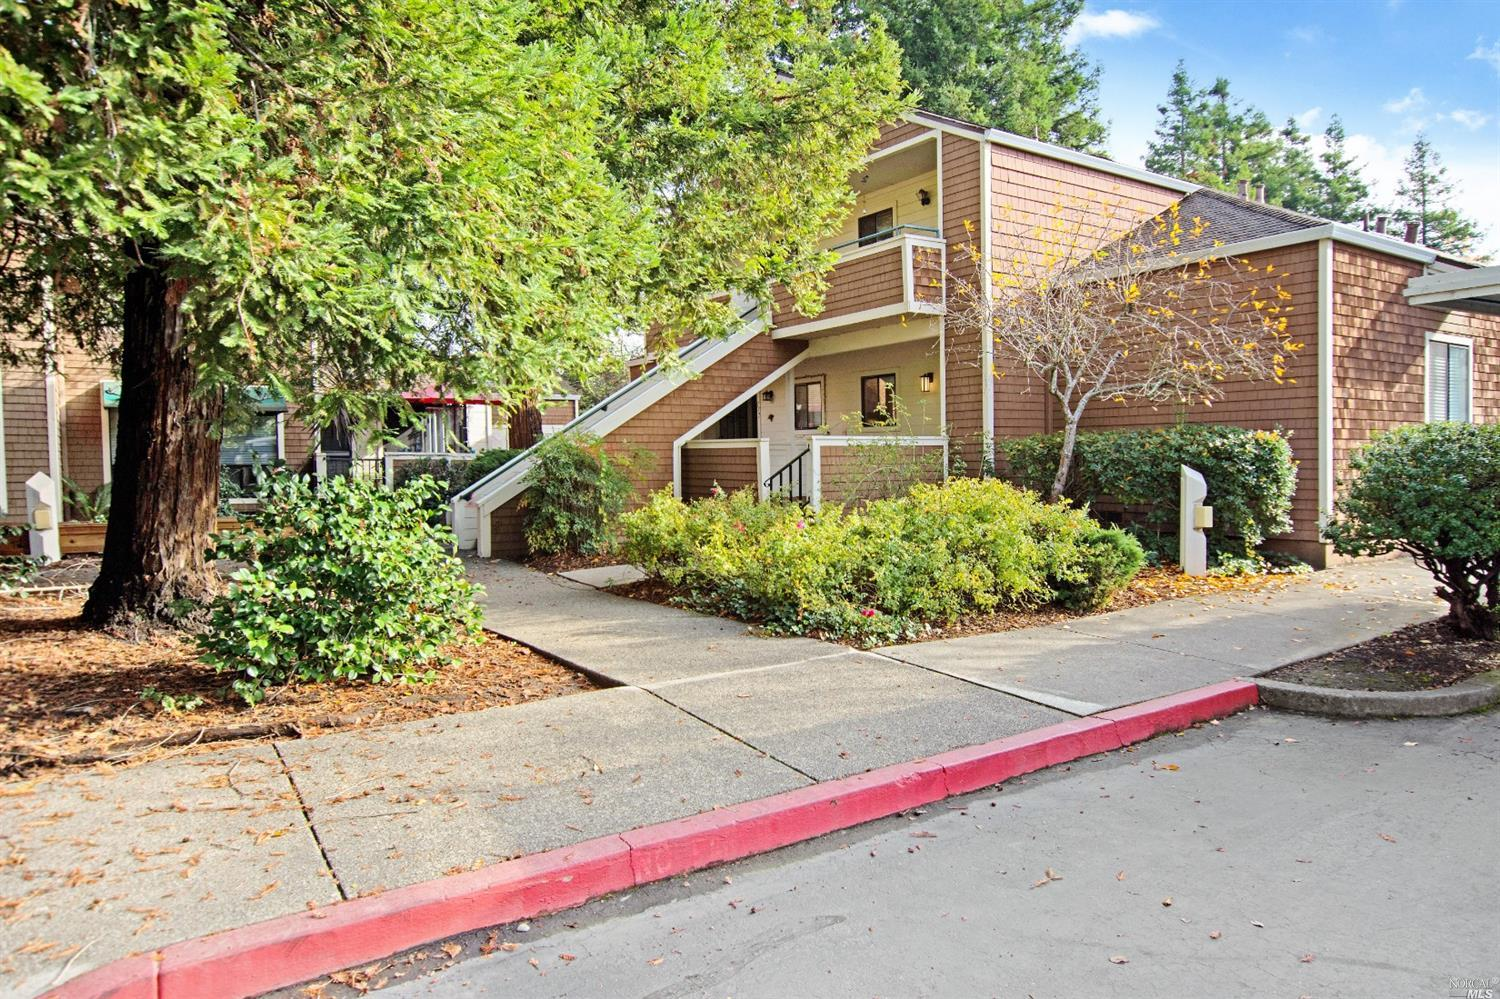 Well maintained single story two bedroom, one bath condo in a gated complex. This end unit condo fea